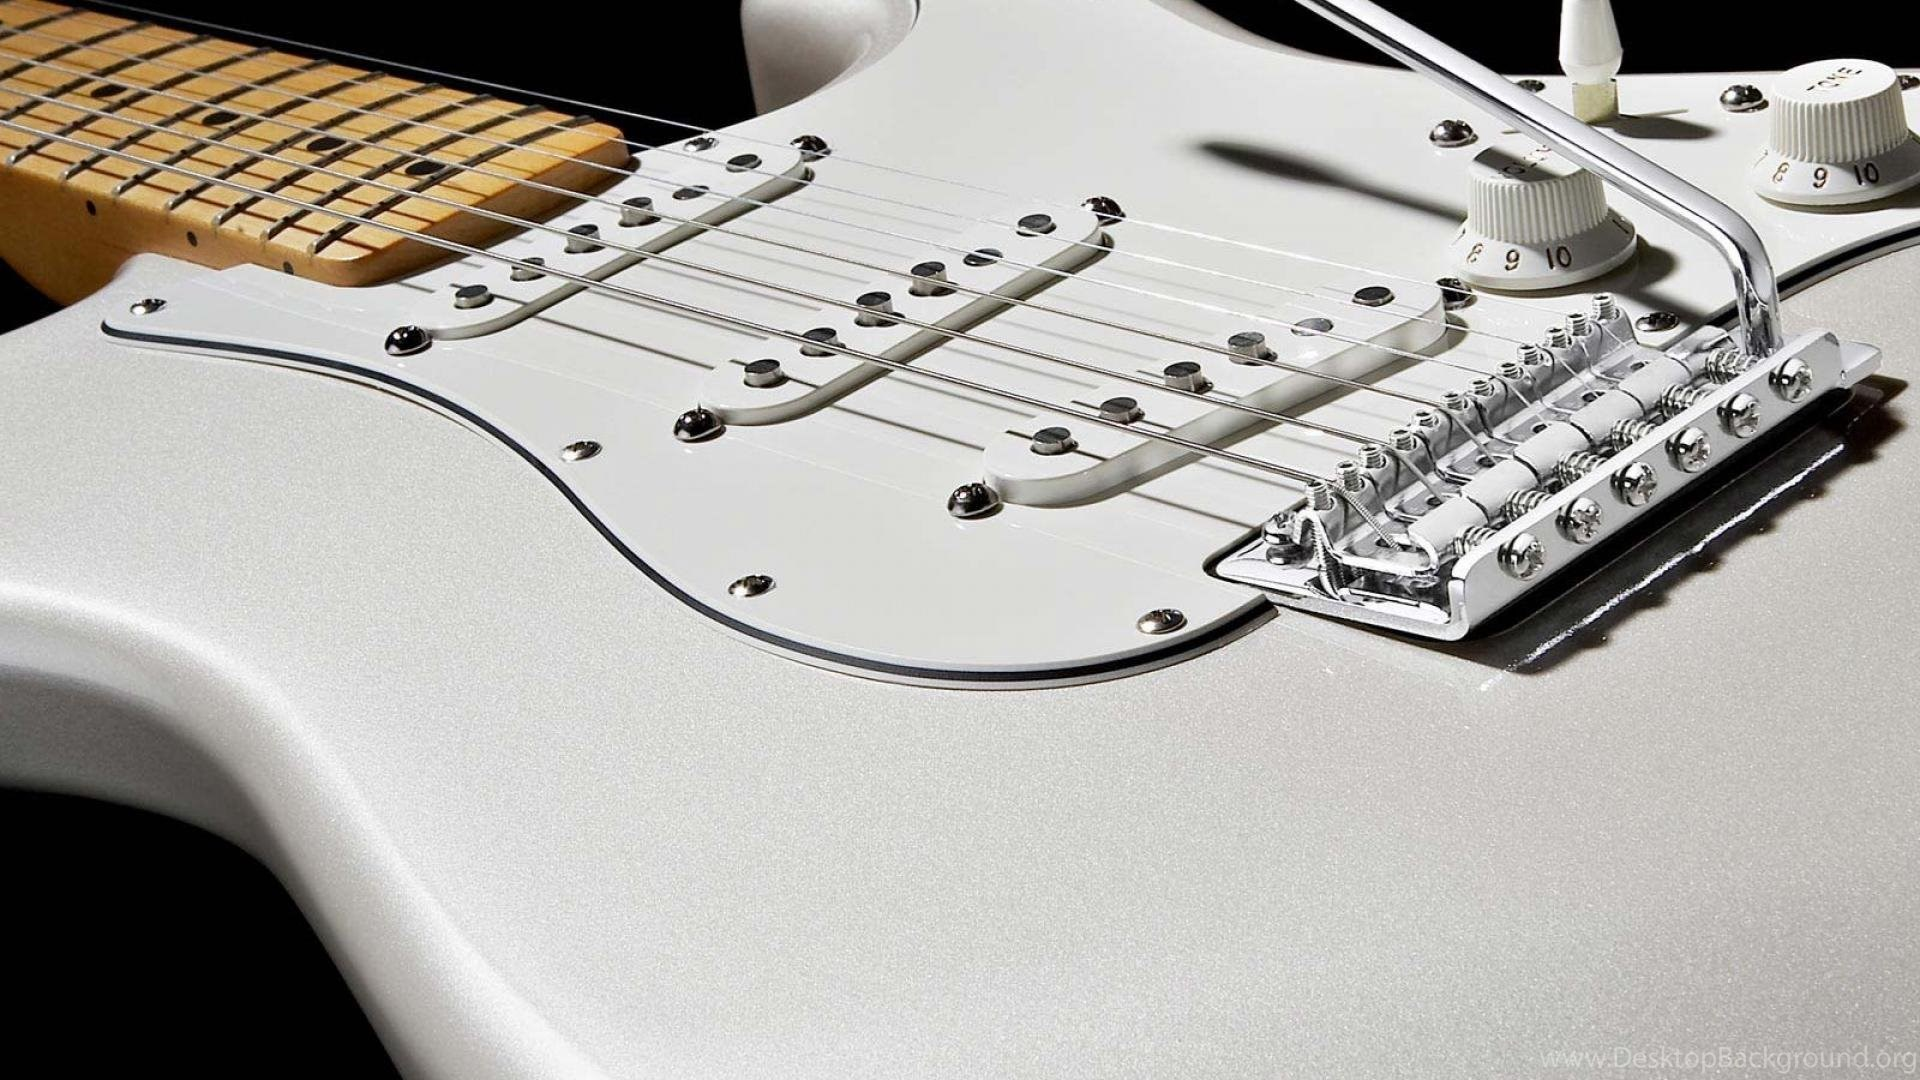 Guitar Fender White Color Music Instrument Hd Wallpapers Wallpapers